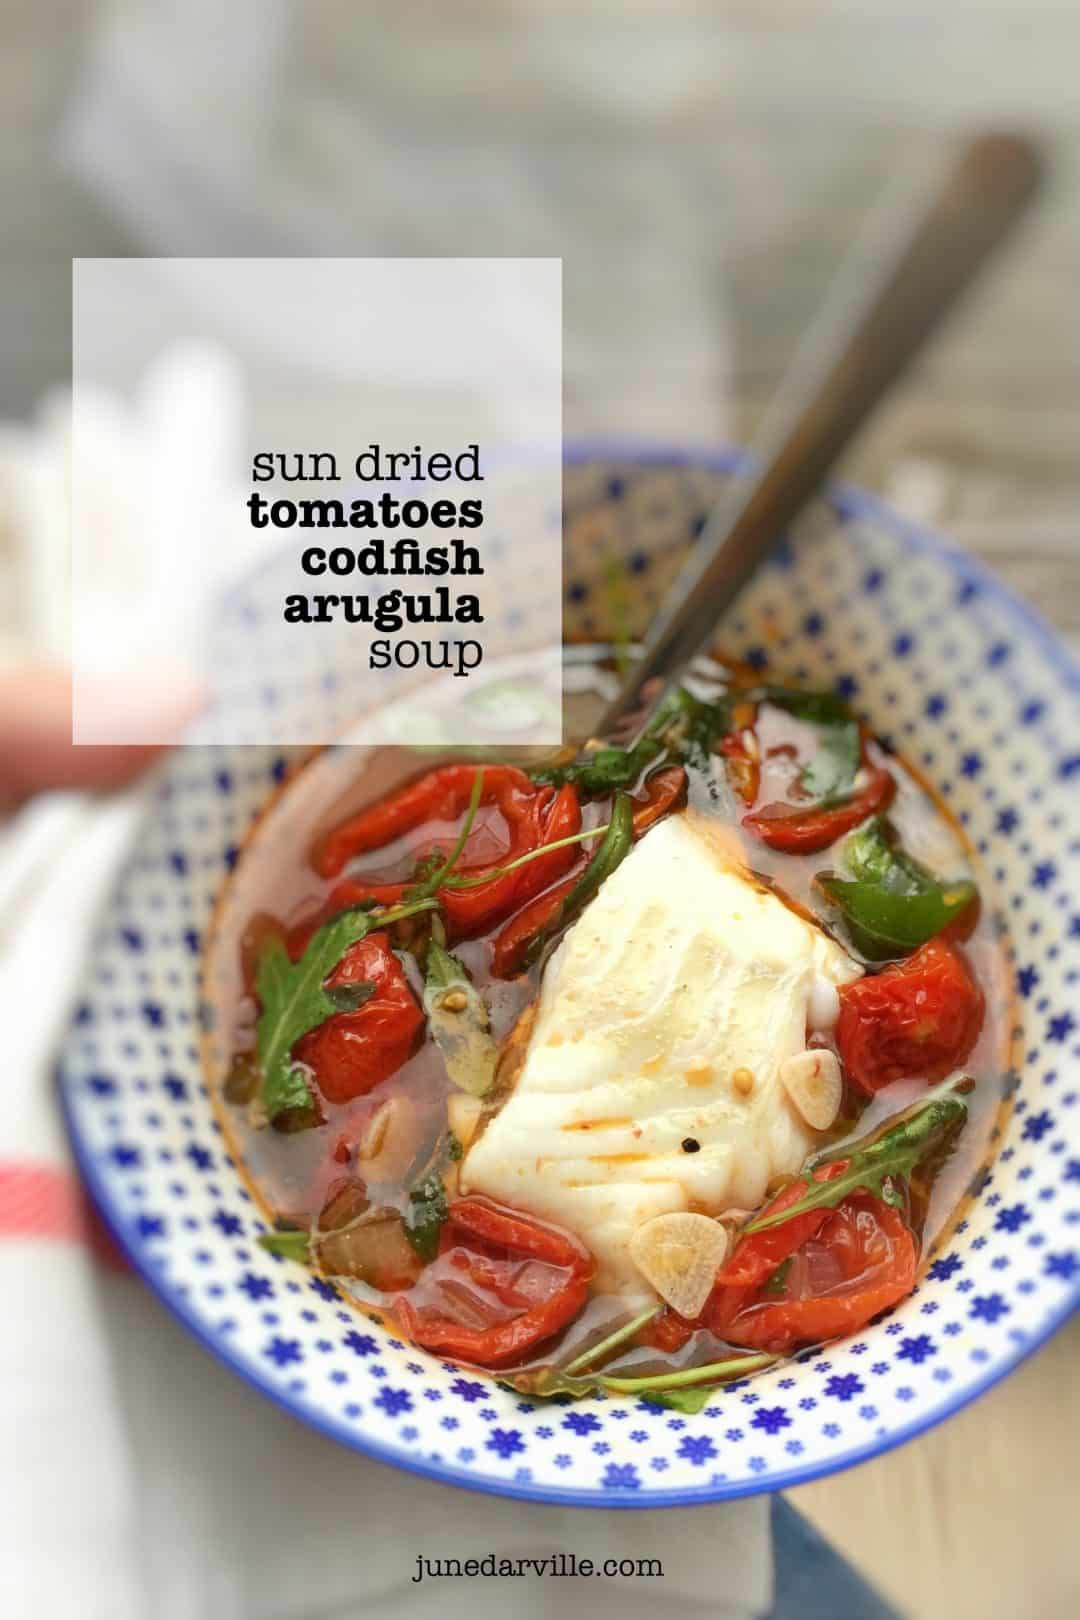 A 20-minute sun dried tomato soup recipe with fresh arugula and codfish... what a delicious lunch soup! Learn how to make sun dried tomatoes at home.